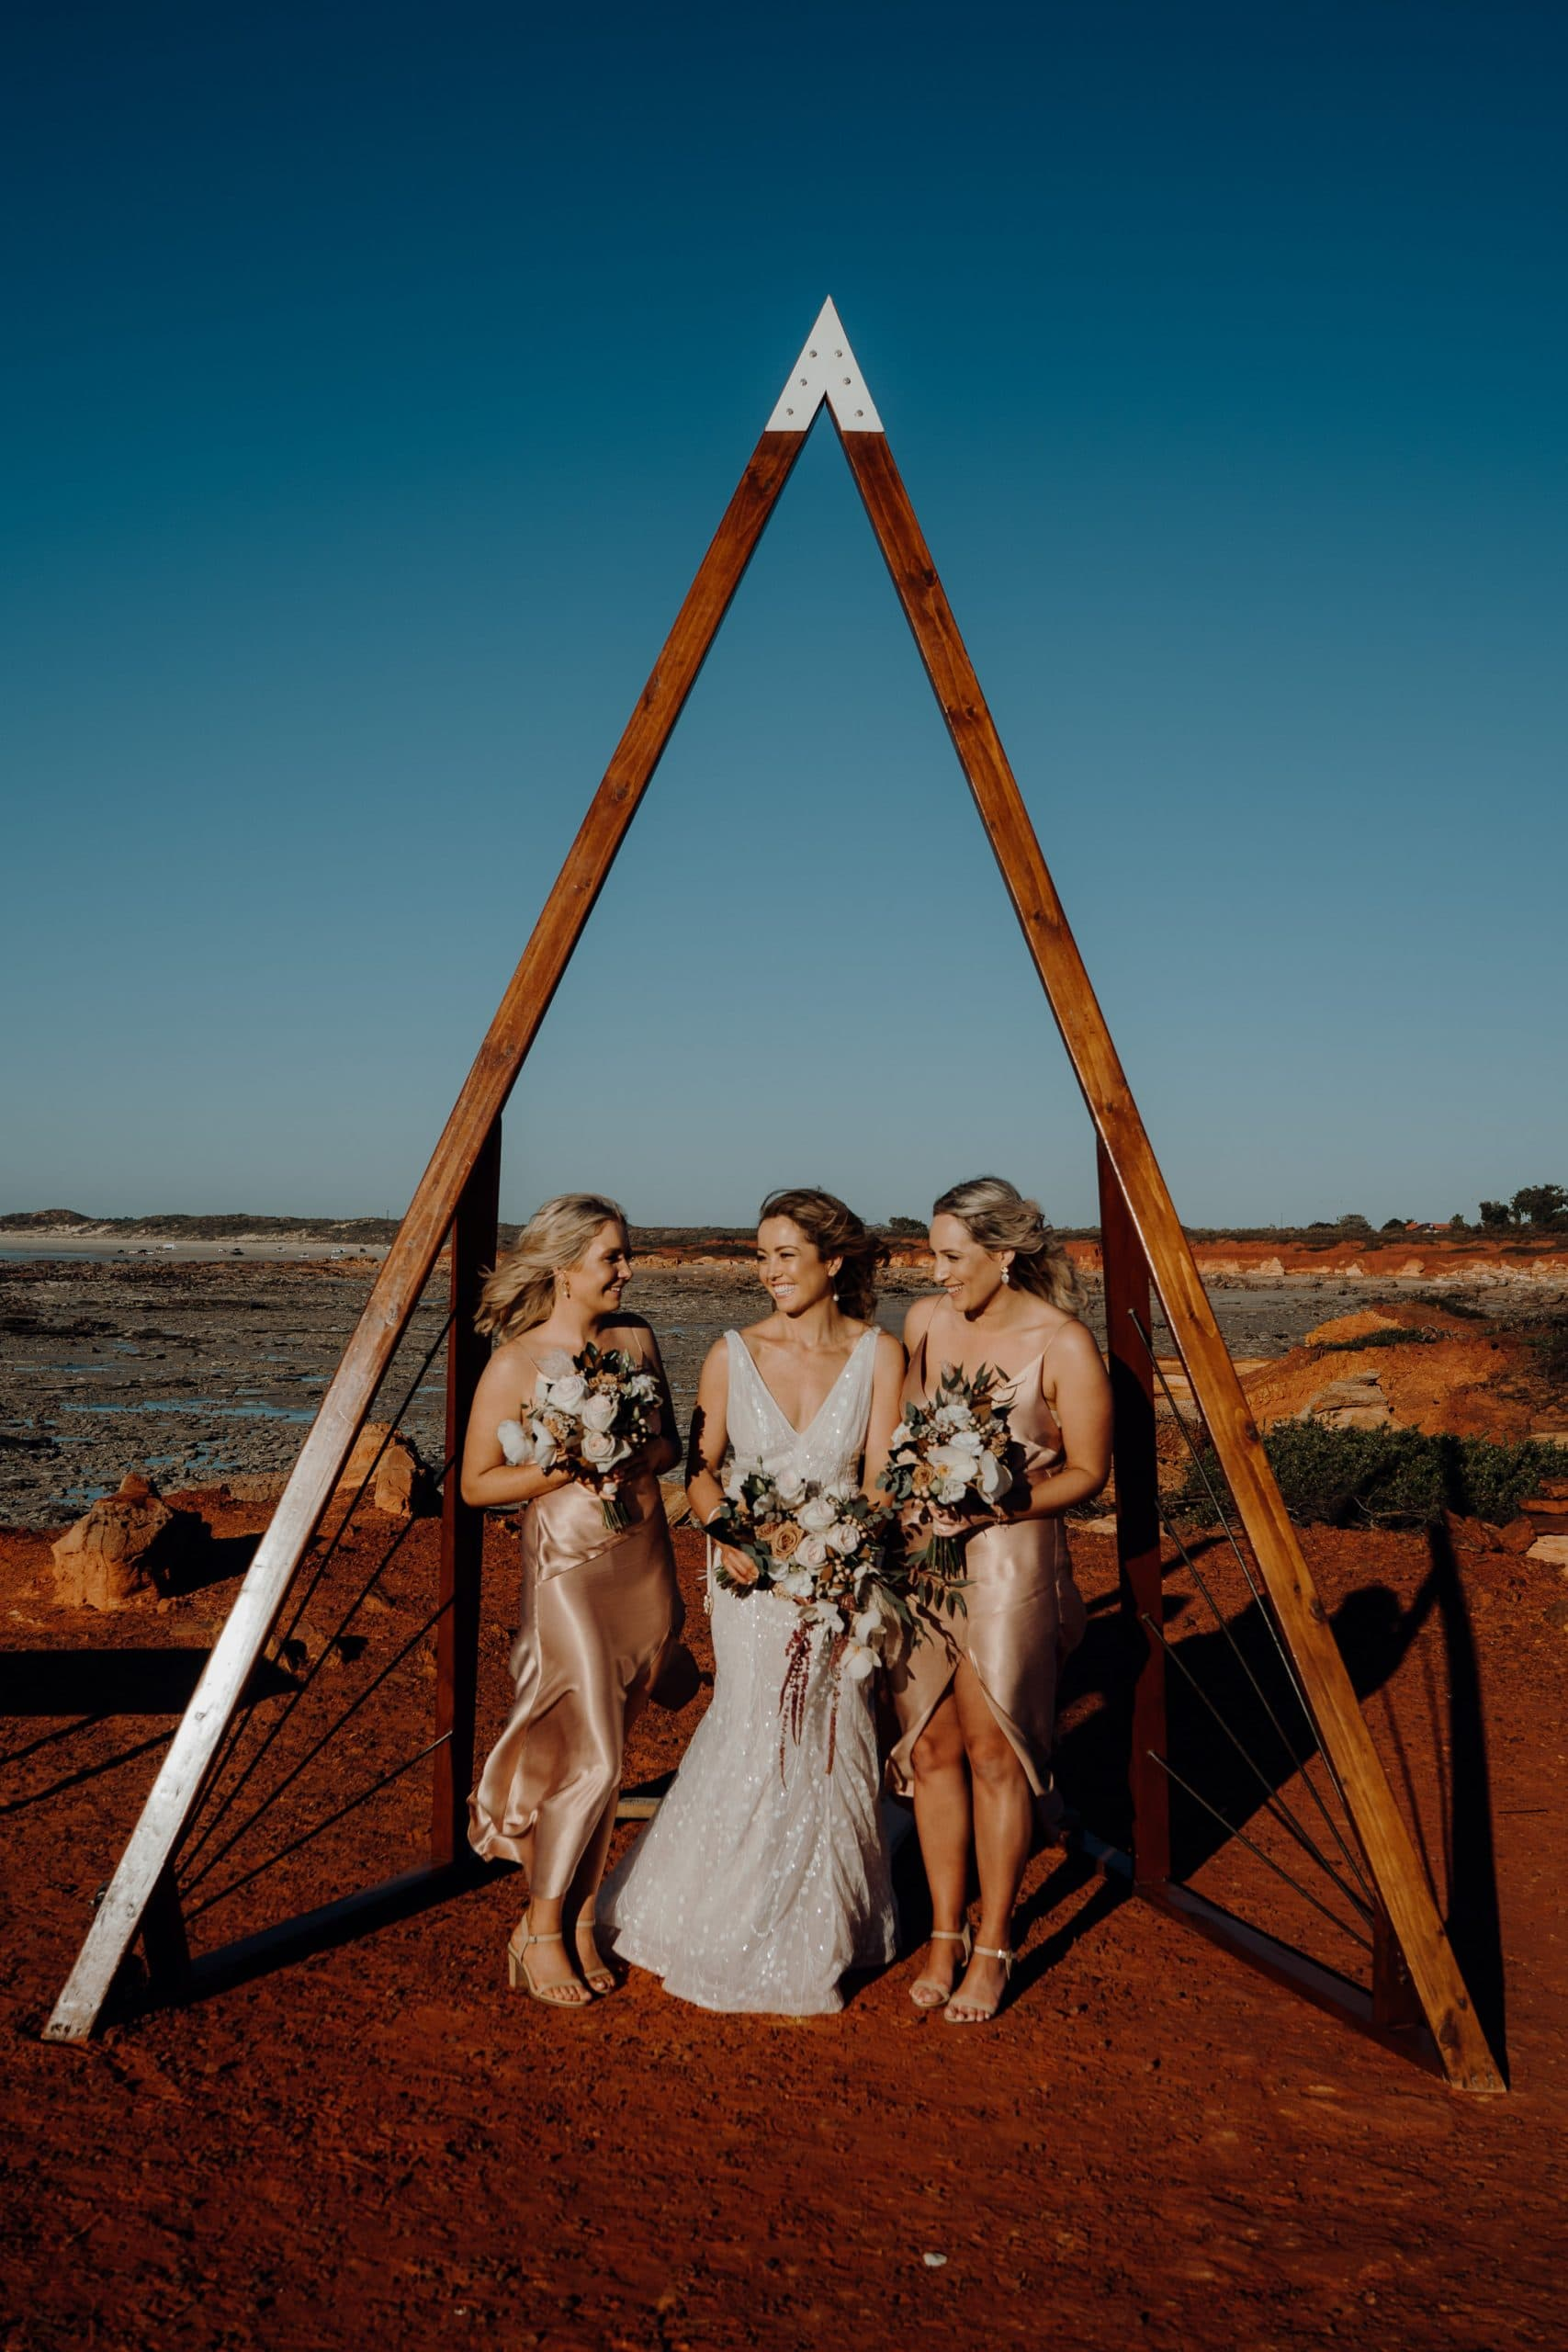 young beautiful bride and her two bridesmaids under a triangular wooden arbour with flower bouquets